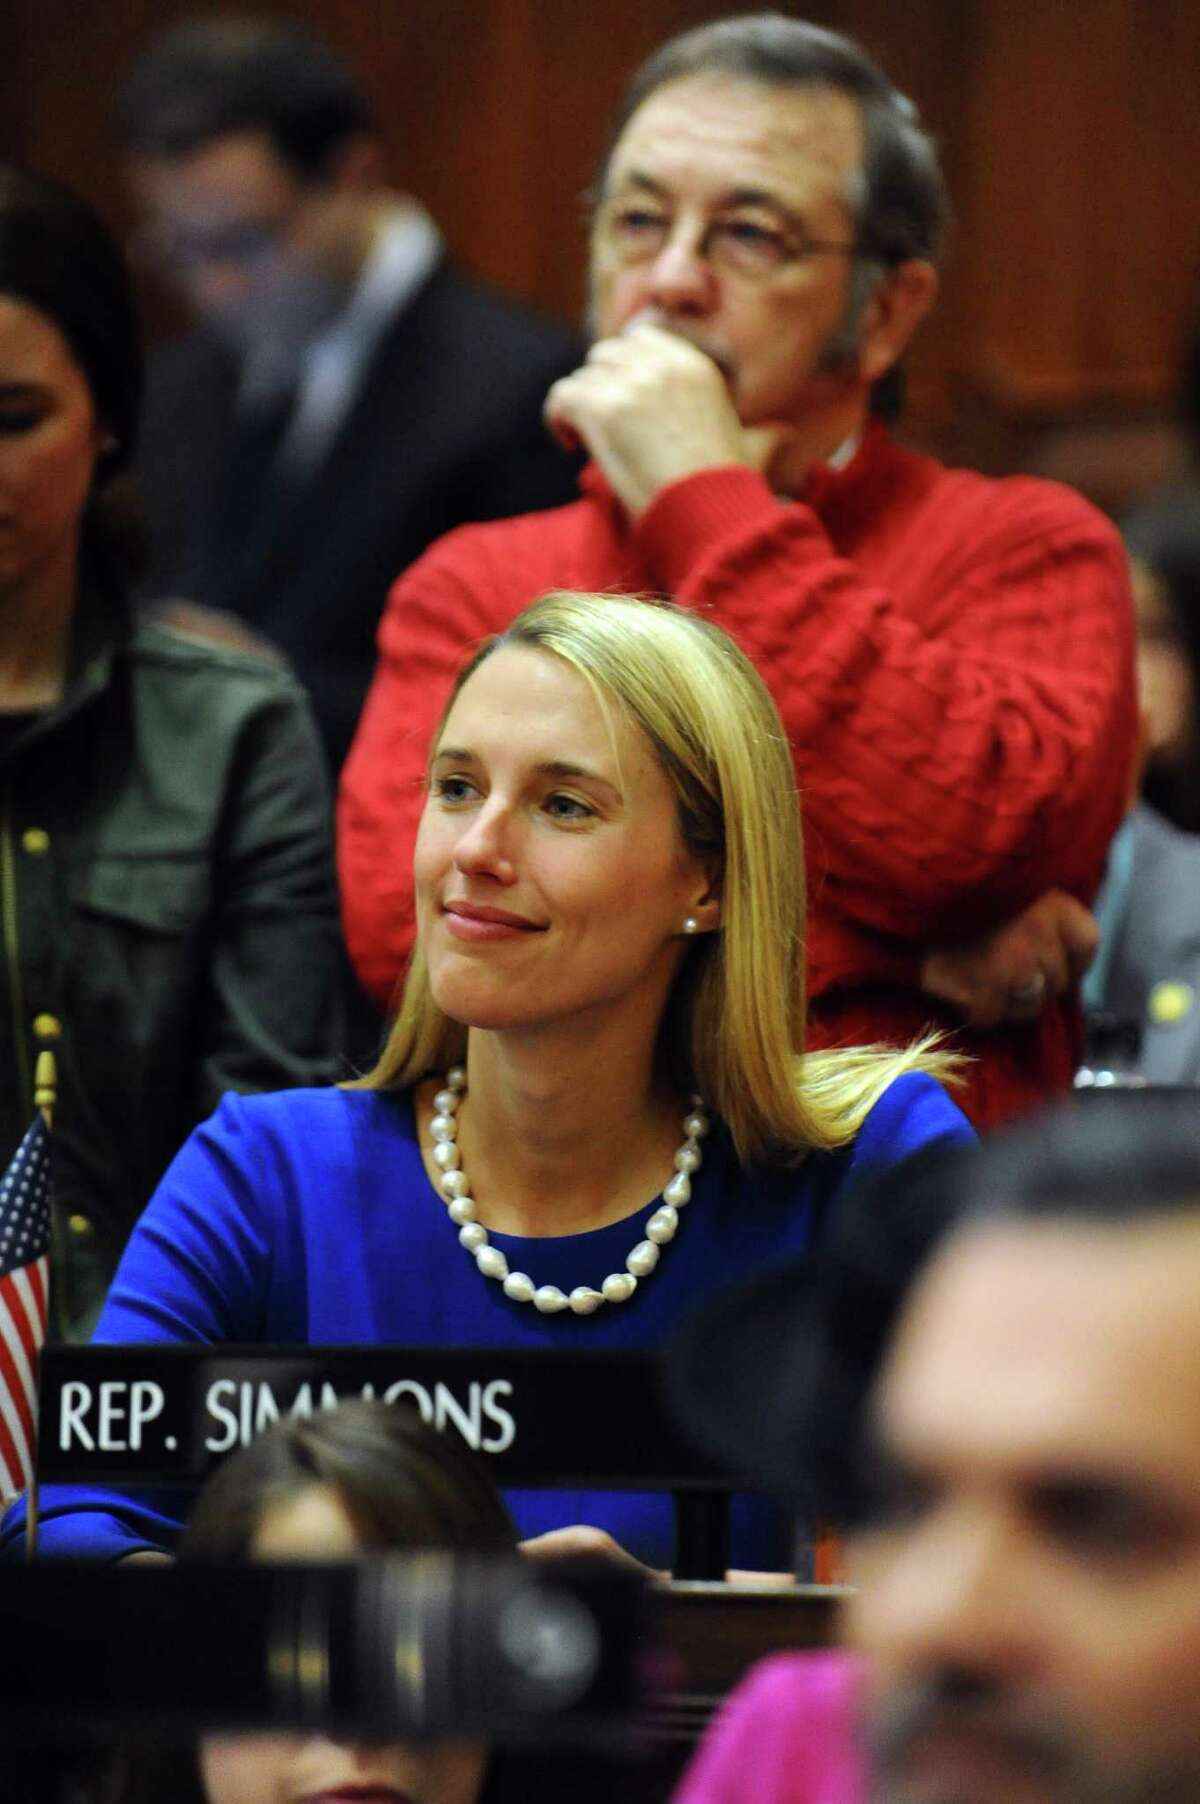 State Representative Caroline Simmons (D, Stamford) on the opening day of the 2017 legislative session at the Capital in Hartford, Conn. on Wednesday, Jan. 4, 2017.